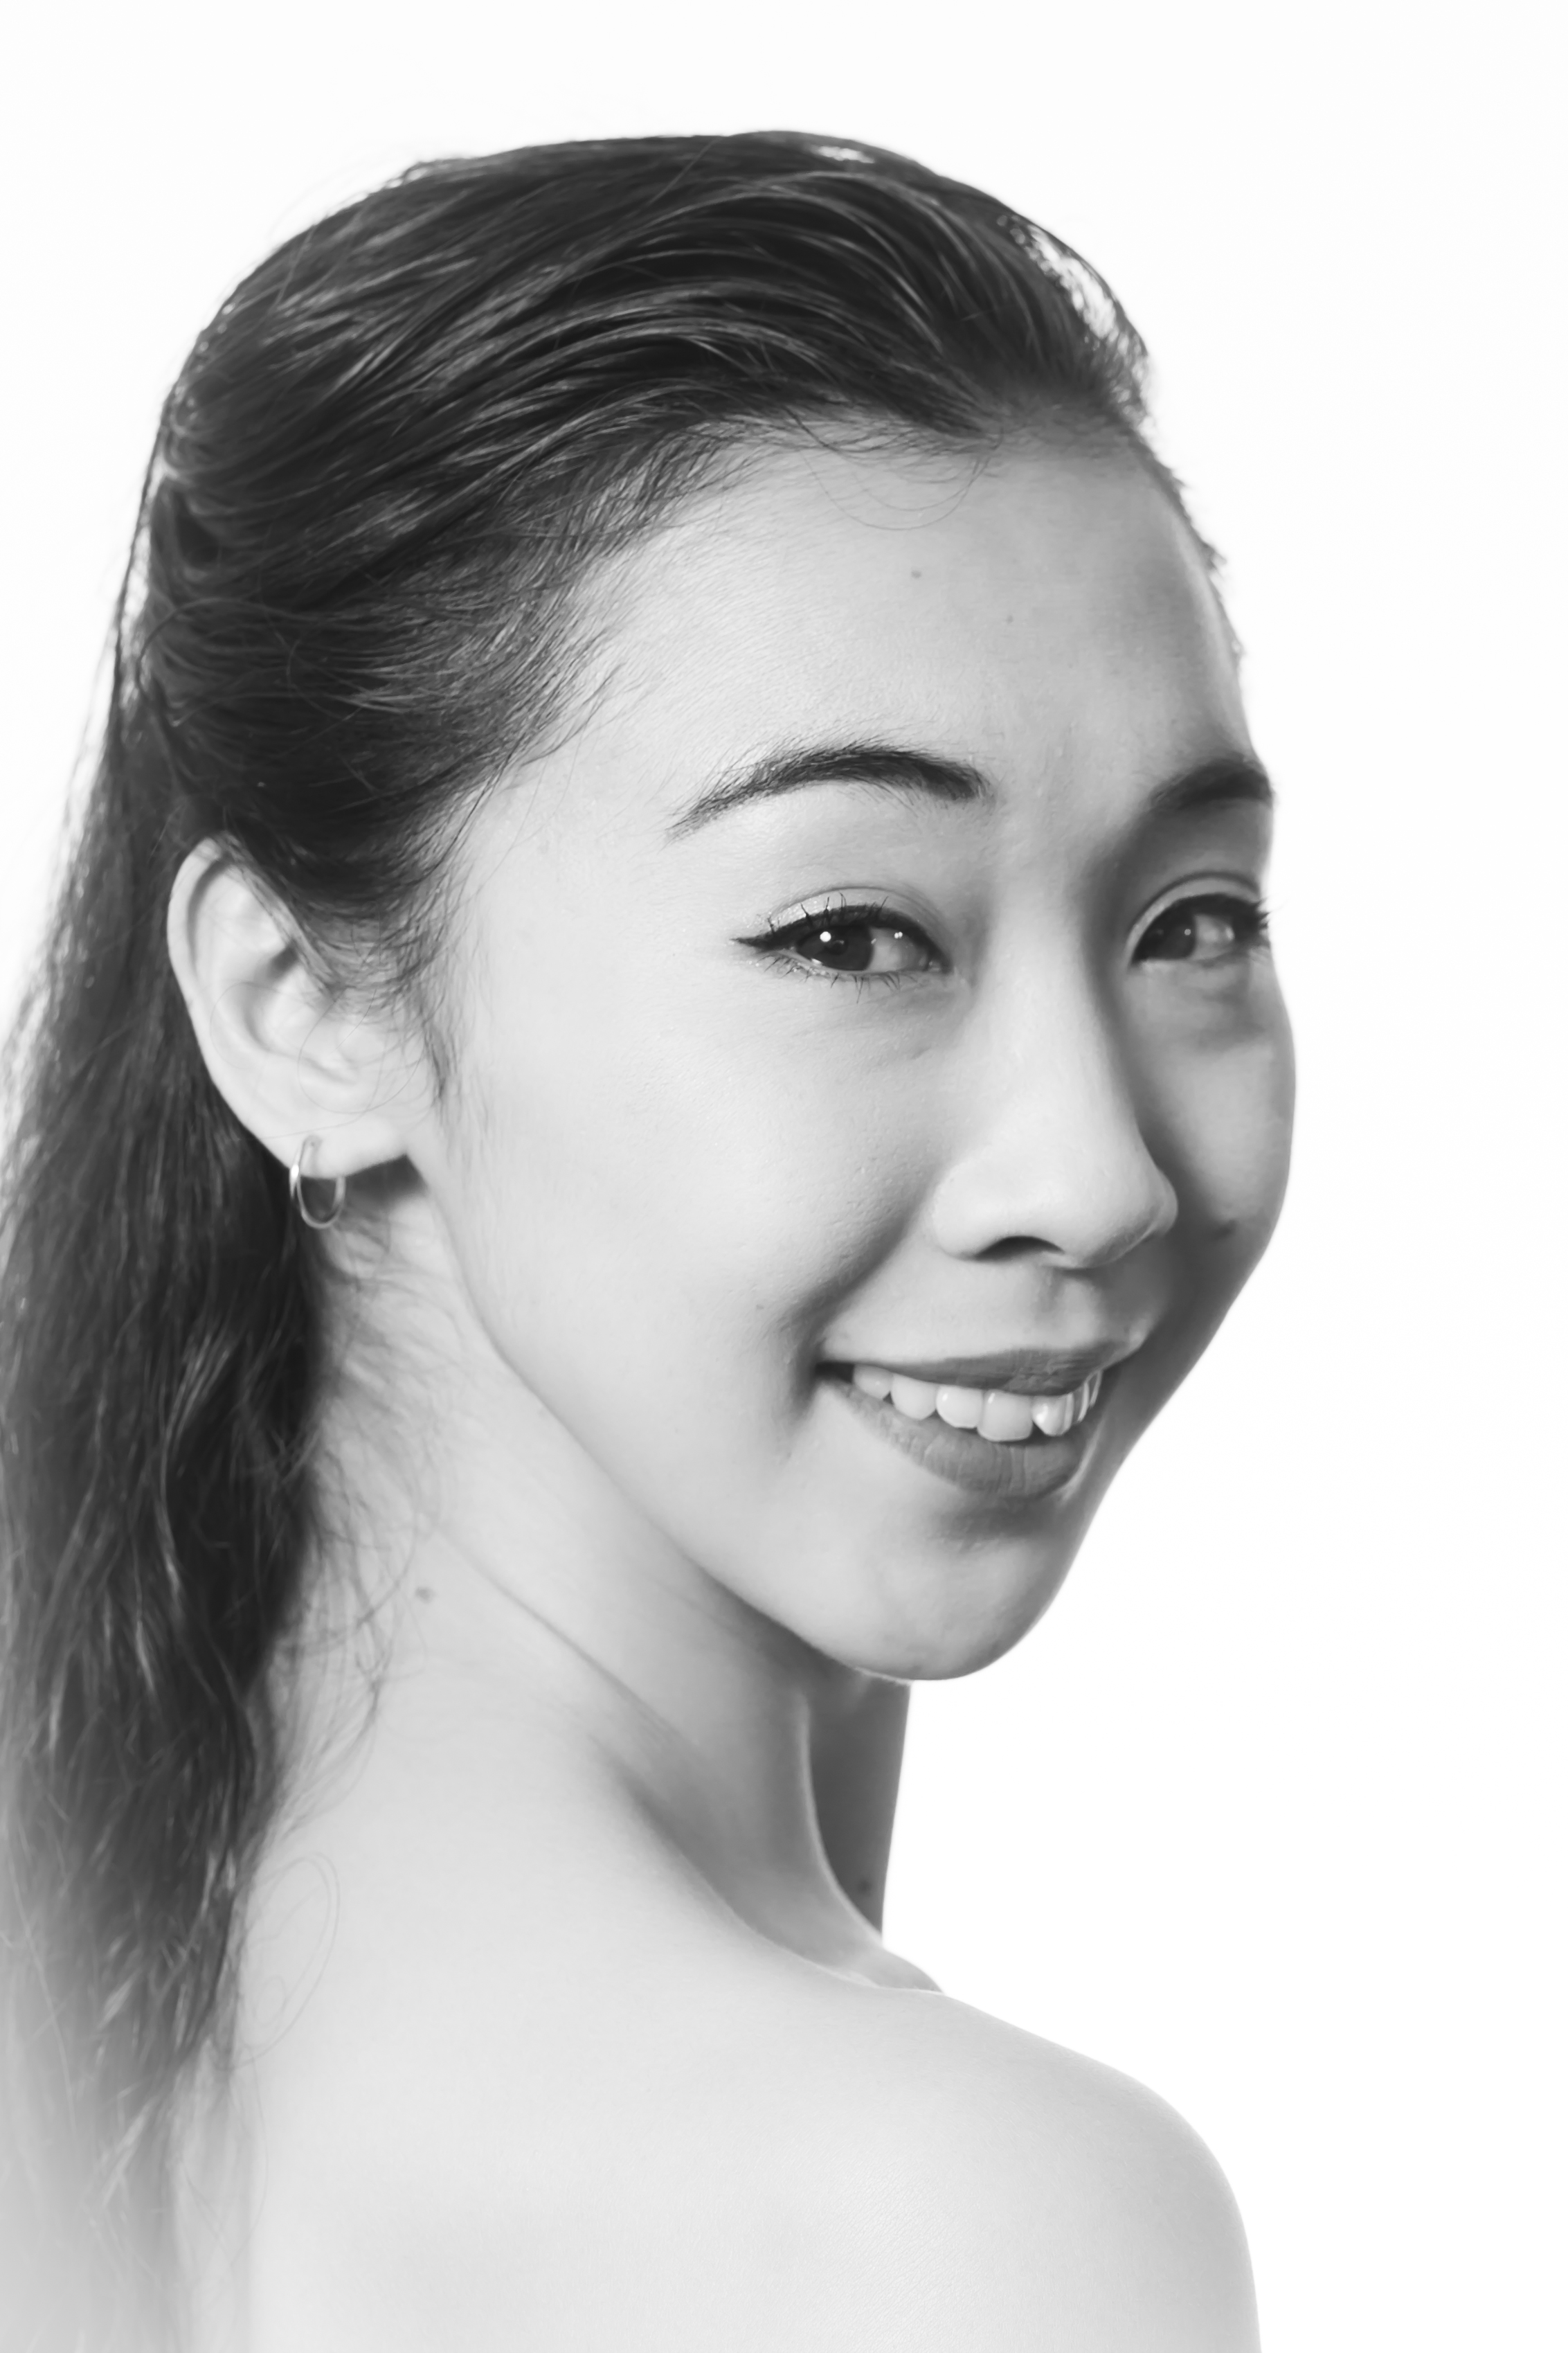 """Yuiko Masukawa   Principal Artist & MCYB Artistic Director   Yuiko Masukawa began her training in her home town of Osaka, Japan. She has trained with Boston Ballet School, Canada's Goh Ballet School, Los Angeles Ballet Company and the Western Australian Academy of Performing Arts (WAAPA).  Yuiko's career has seen her work with Tasmanian Ballet Company, Opera Australia and Nottle Theatre (Korea). Yuiko has also worked with Garry Stewart and featured as the face of Ausdance Victoria.  Yuiko portrays a significant number of the company's principal roles including """"Coppelia"""", """"A Midsummer Night's Dream"""", """"Romeo & Juliet"""", """"Madame Butterfly"""" and """"Carmen"""".  Yuiko has a keen interest in choreography being the current Artistic Director for Melbourne City Youth Ballet and Principal Artist for Melbourne City Ballet."""